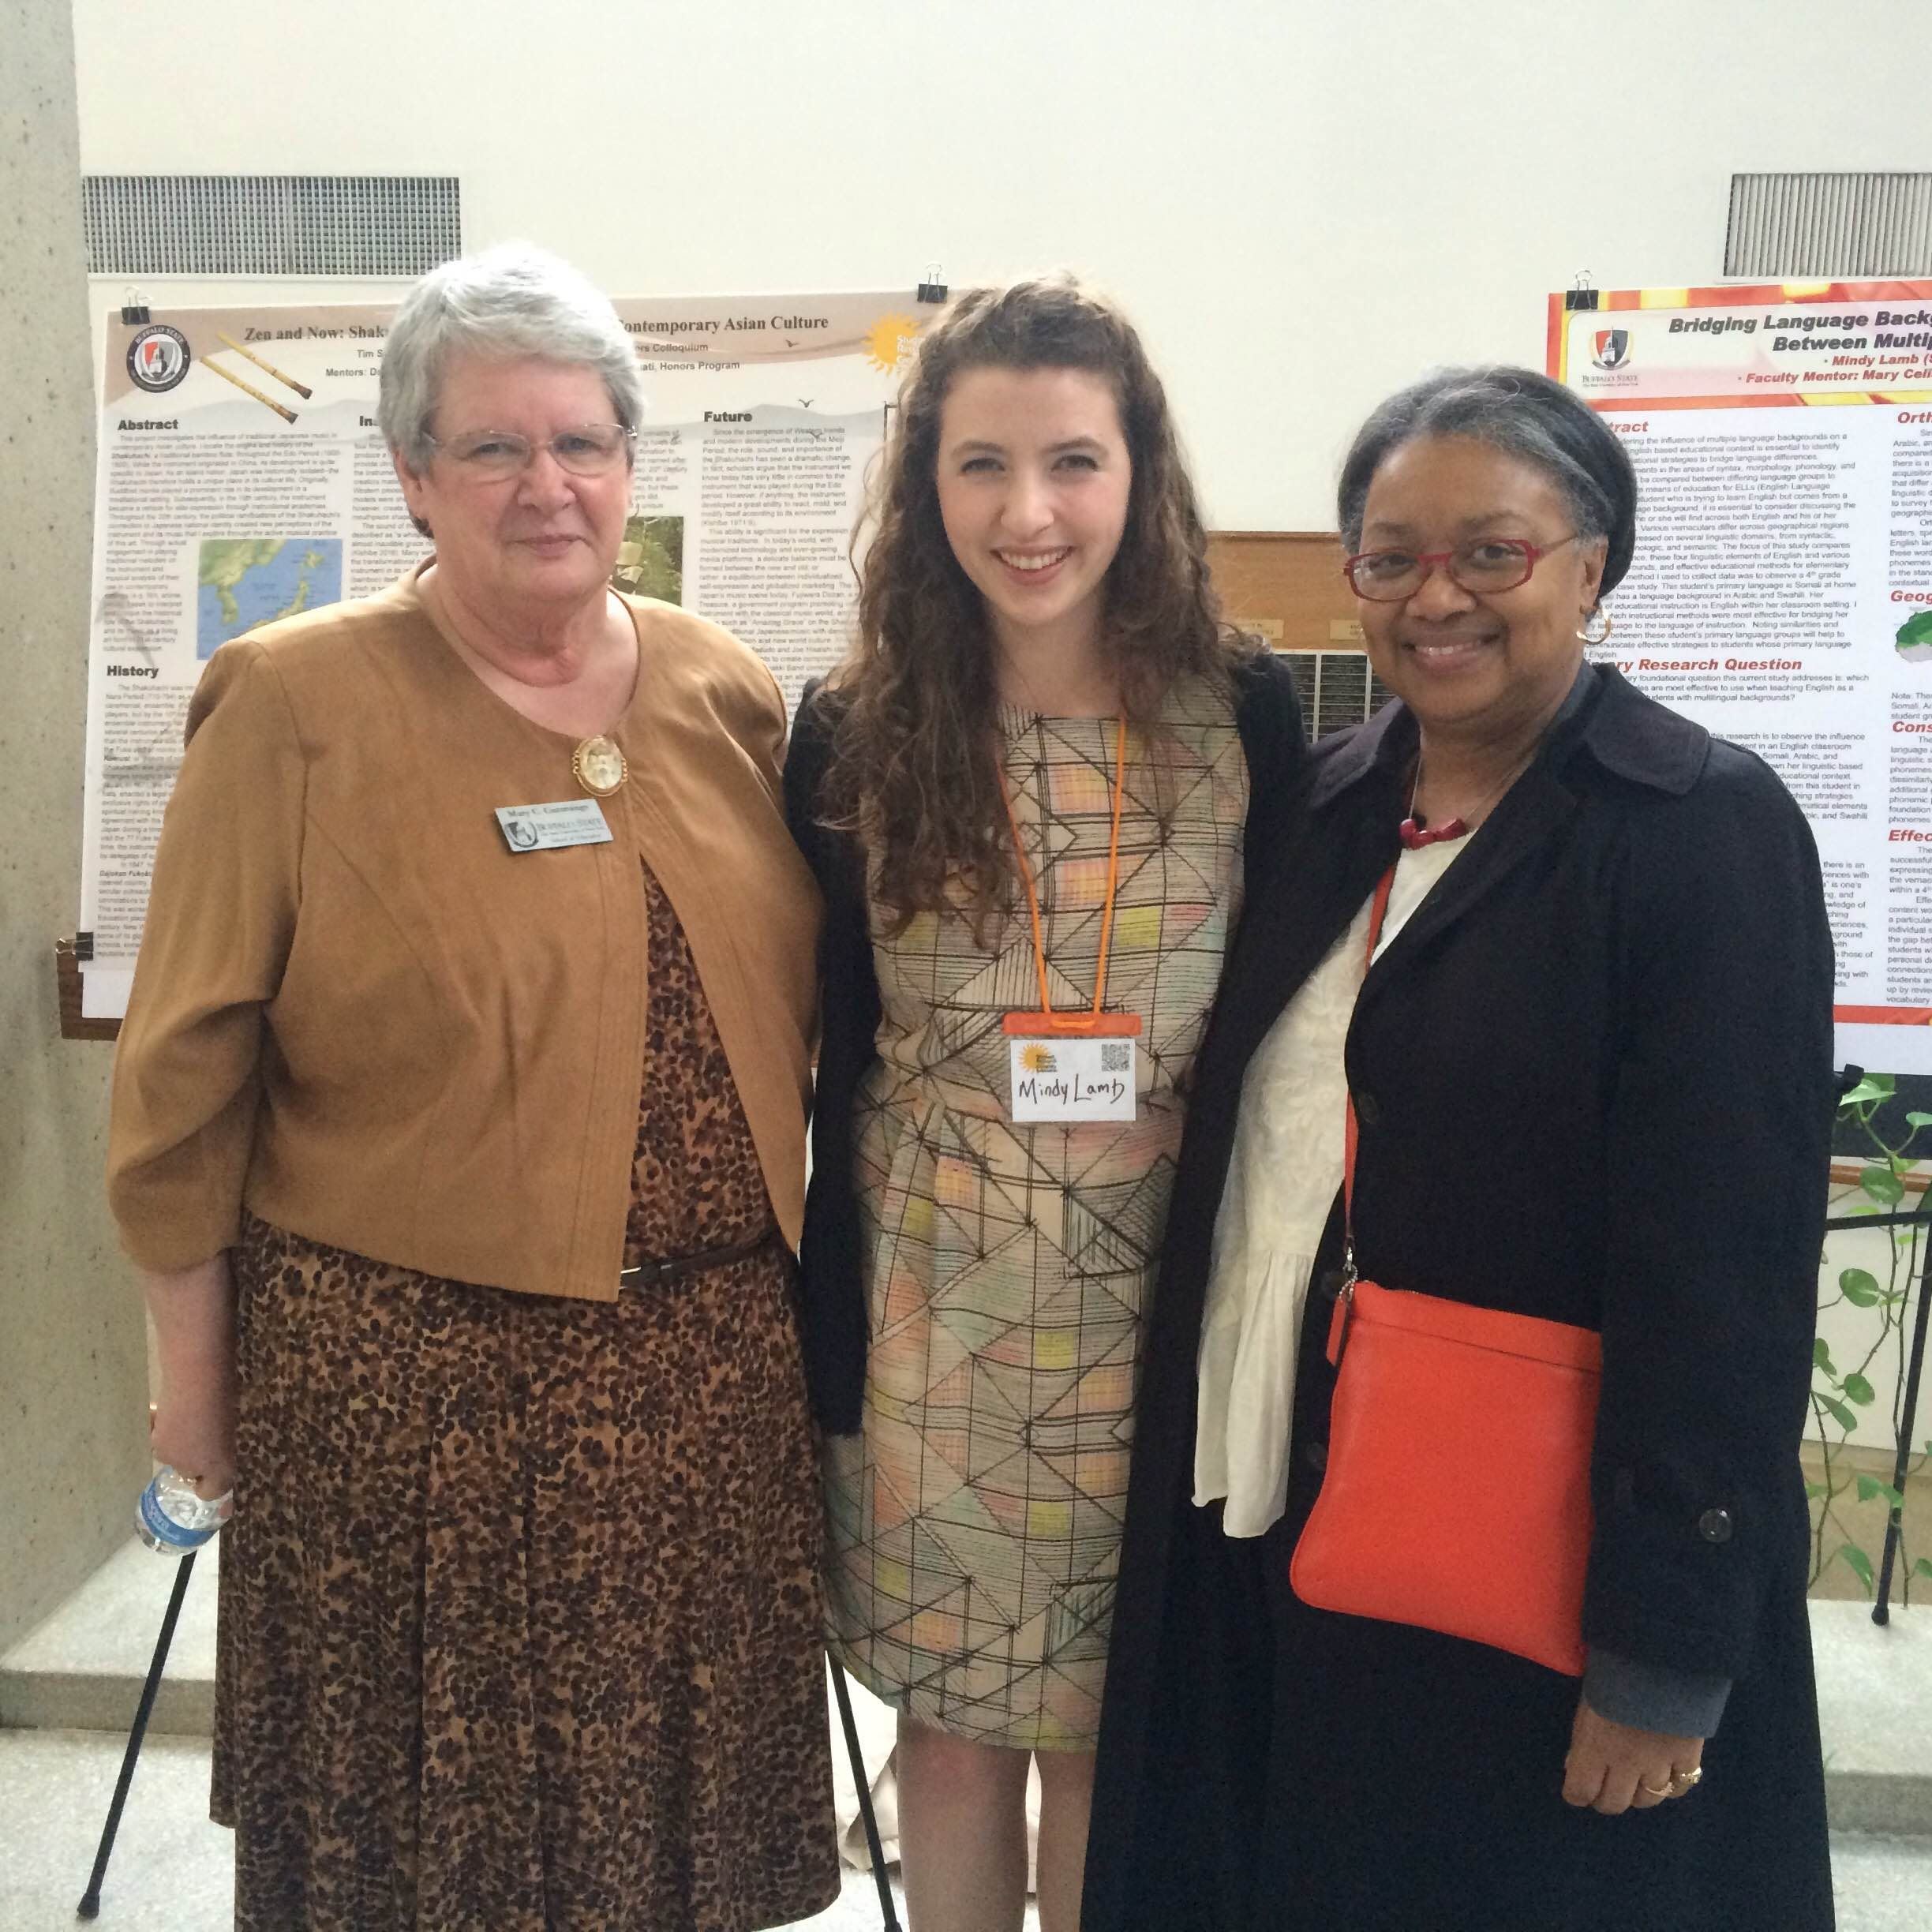 Mary C. Cummings, Mindy Lamb, and Dr. Conway-Turner